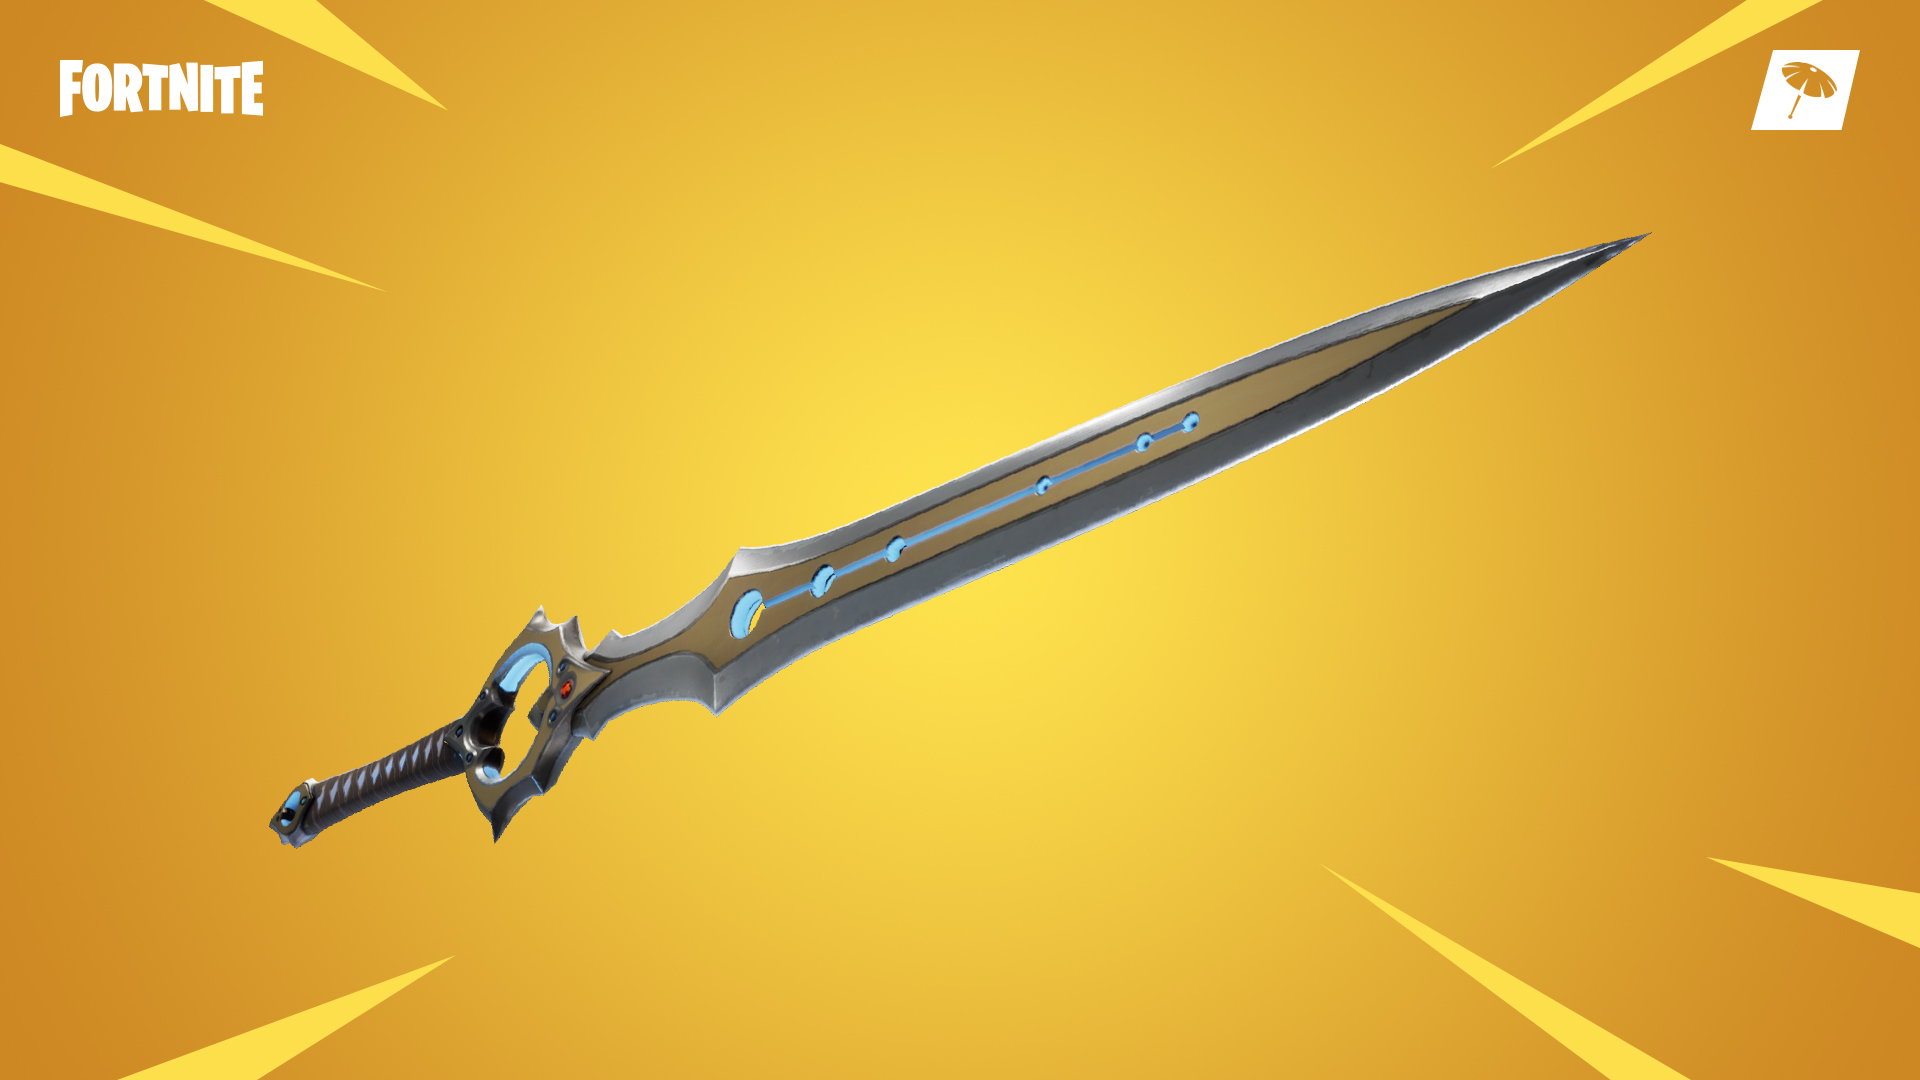 Fortnite Adds Sword Weapons In Latest PatchSpecifically